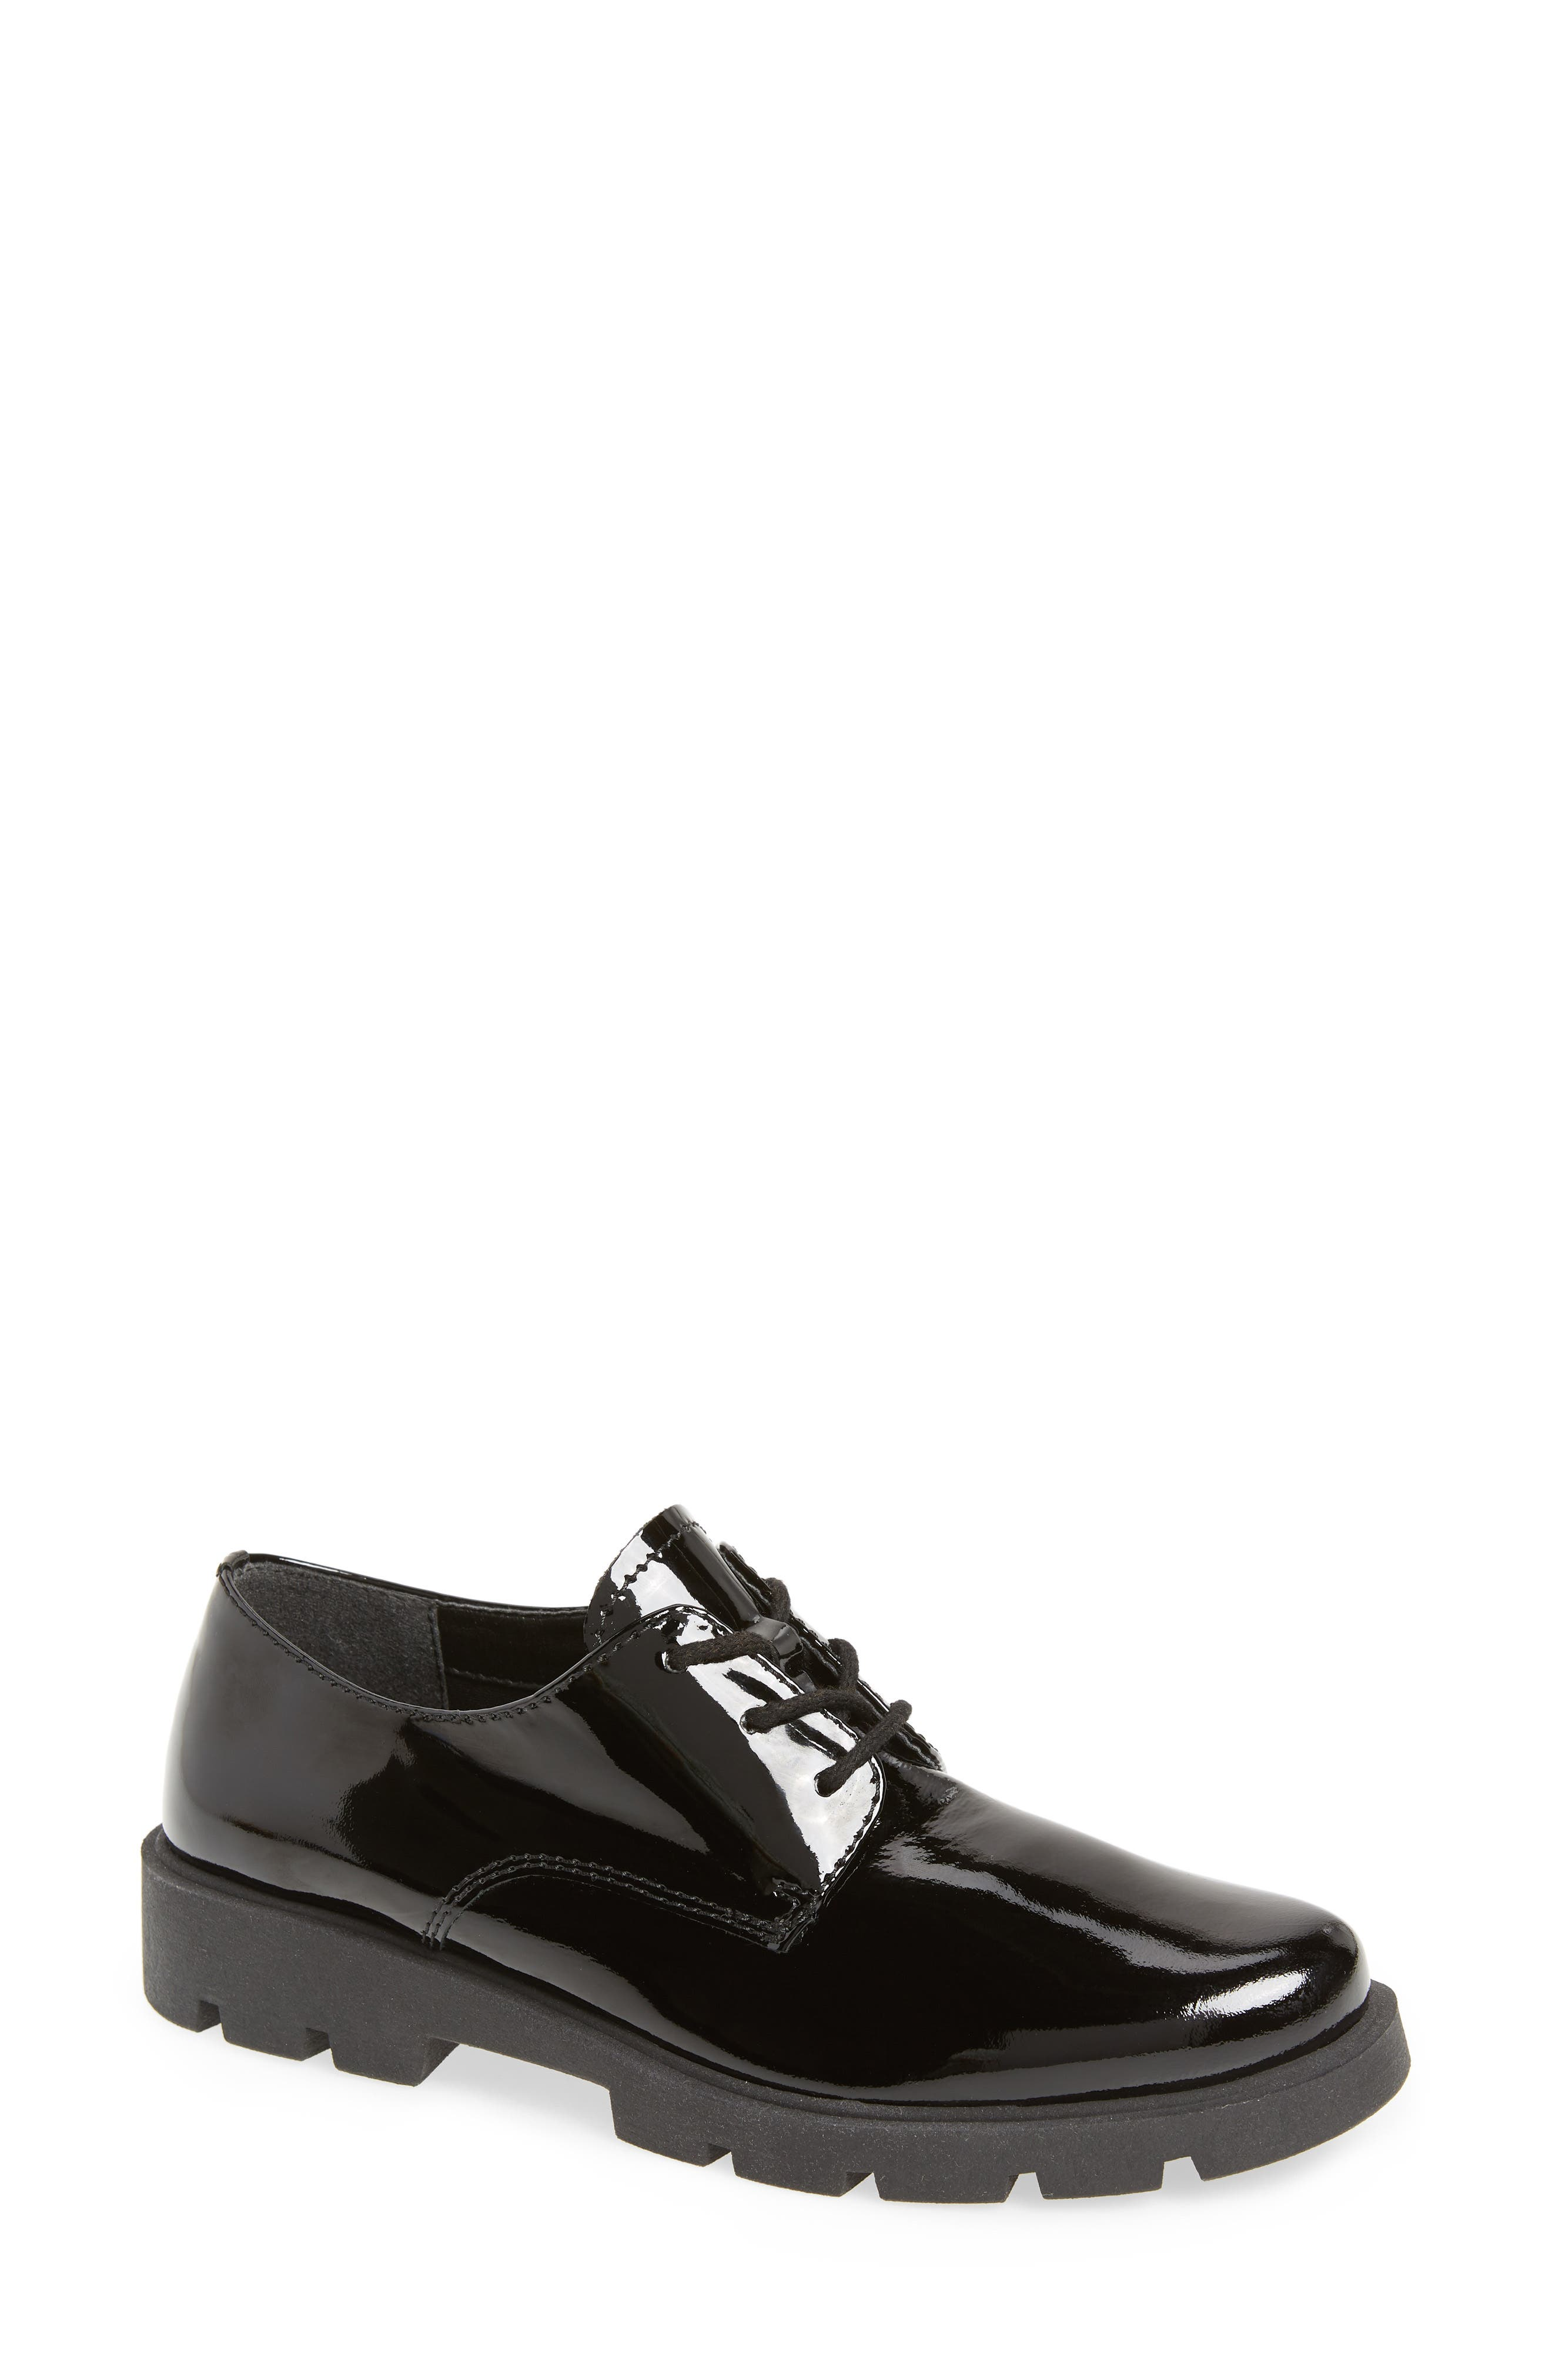 People Mover Derby,                             Main thumbnail 1, color,                             BLACK PATENT LEATHER